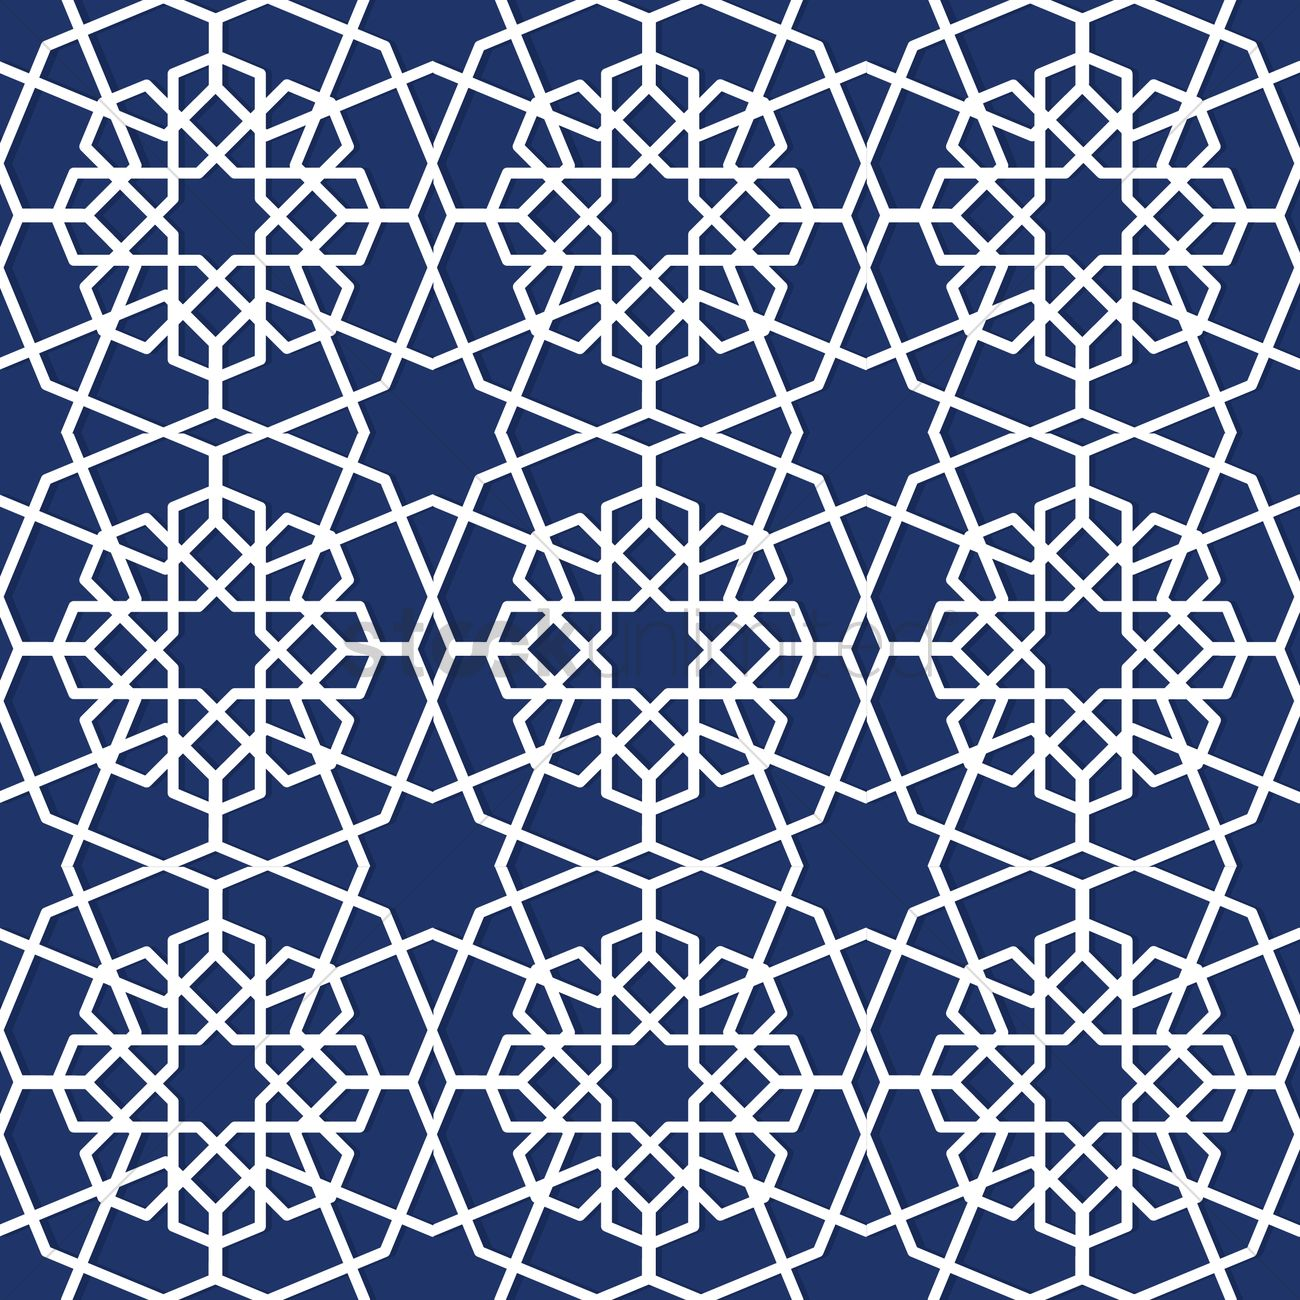 Islamic geometric pattern design vector image 1979679 Geometric patterns